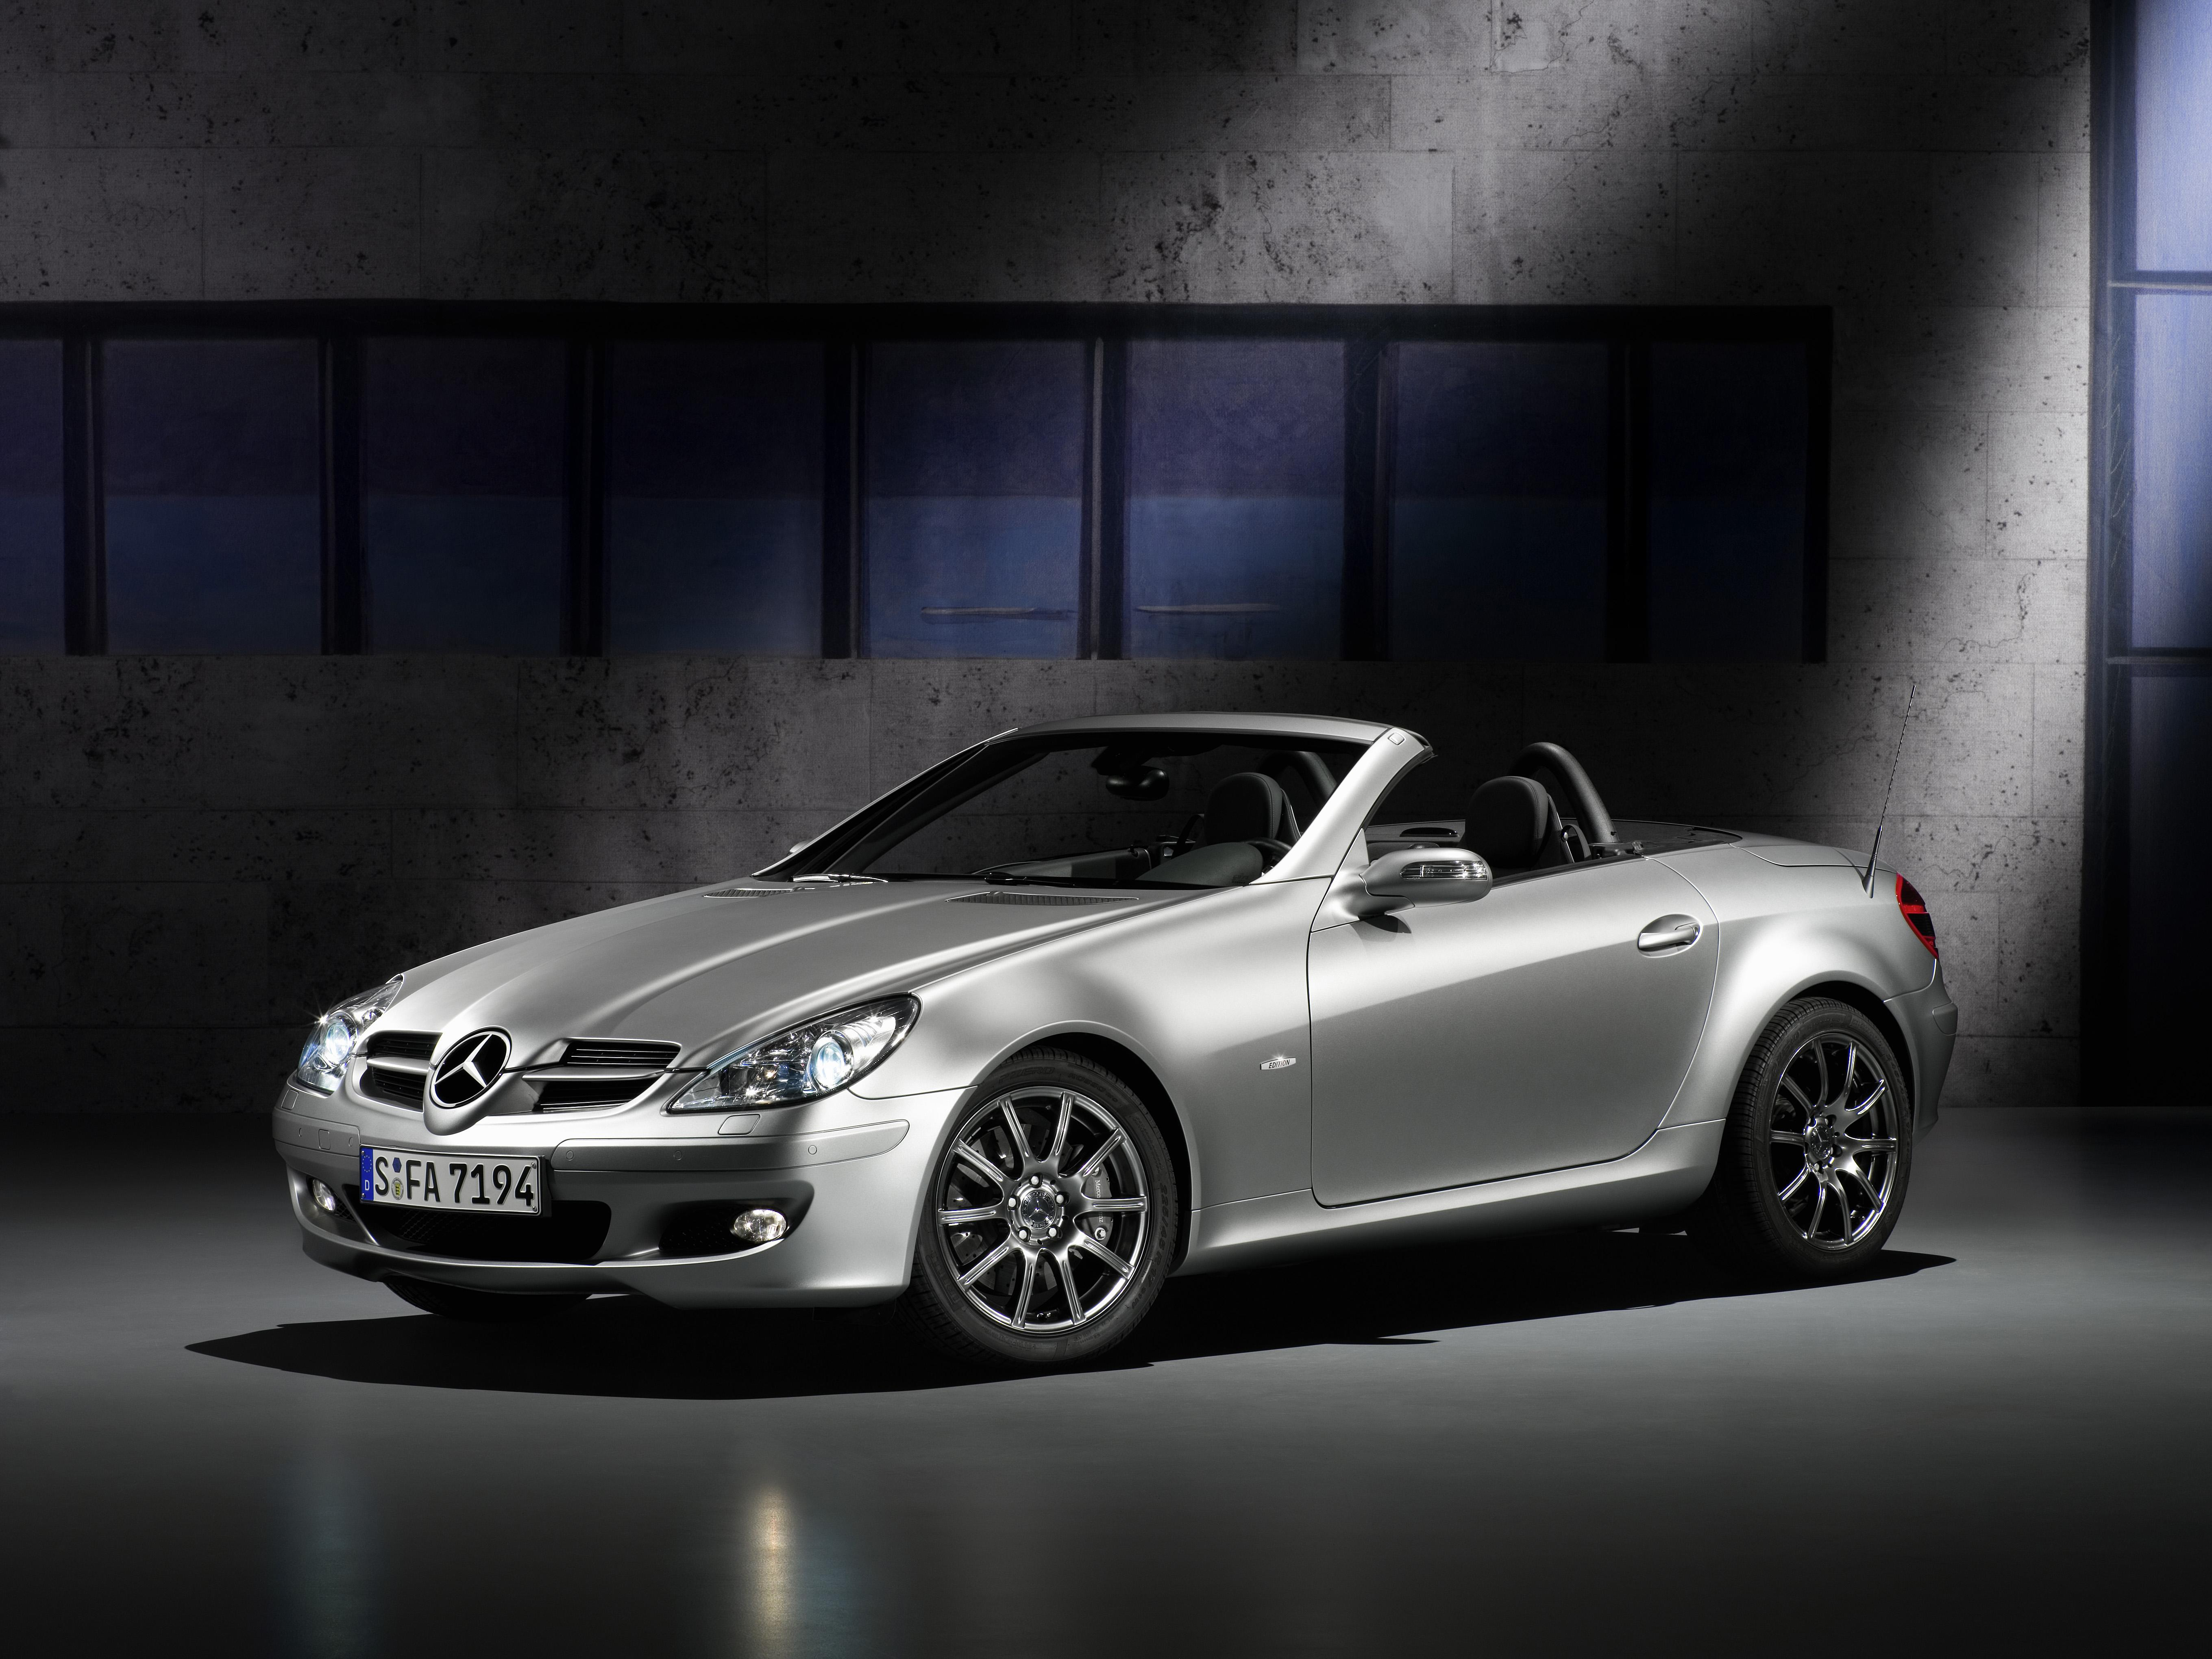 2007 mercedes slk class edition 10 review top speed. Black Bedroom Furniture Sets. Home Design Ideas